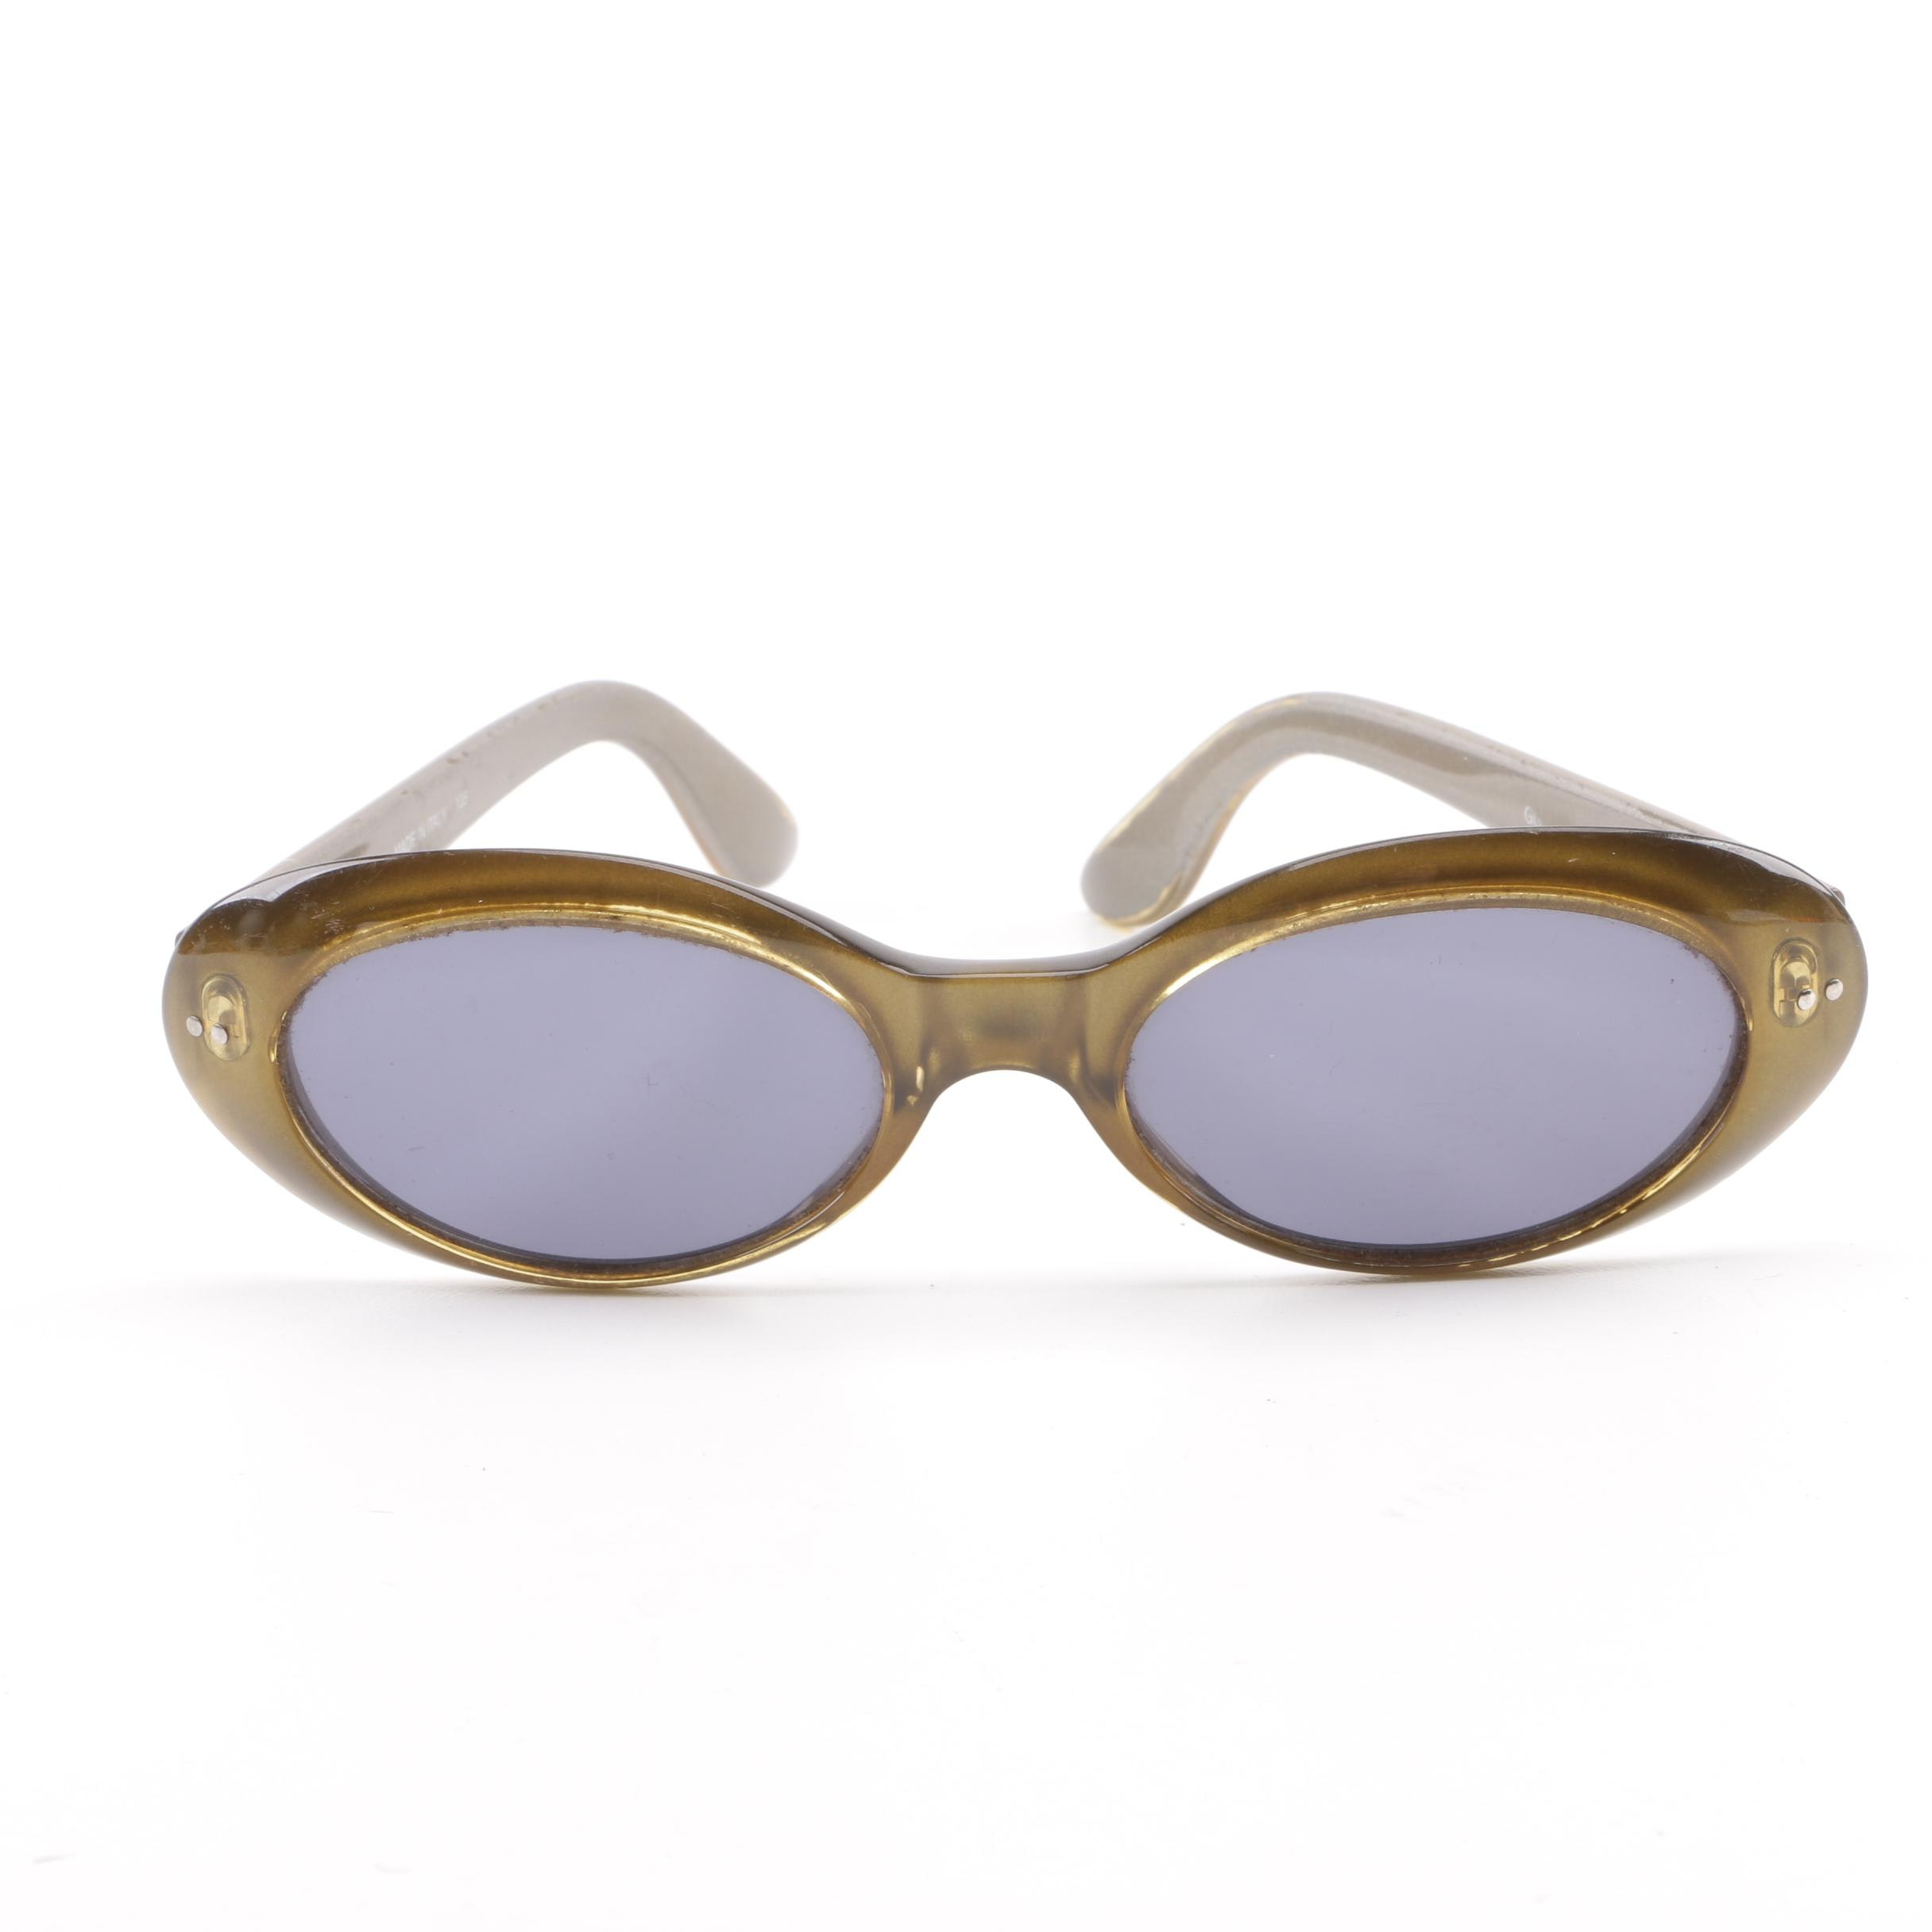 Vintage Gucci GG Metallic Green Oval Sunglasses